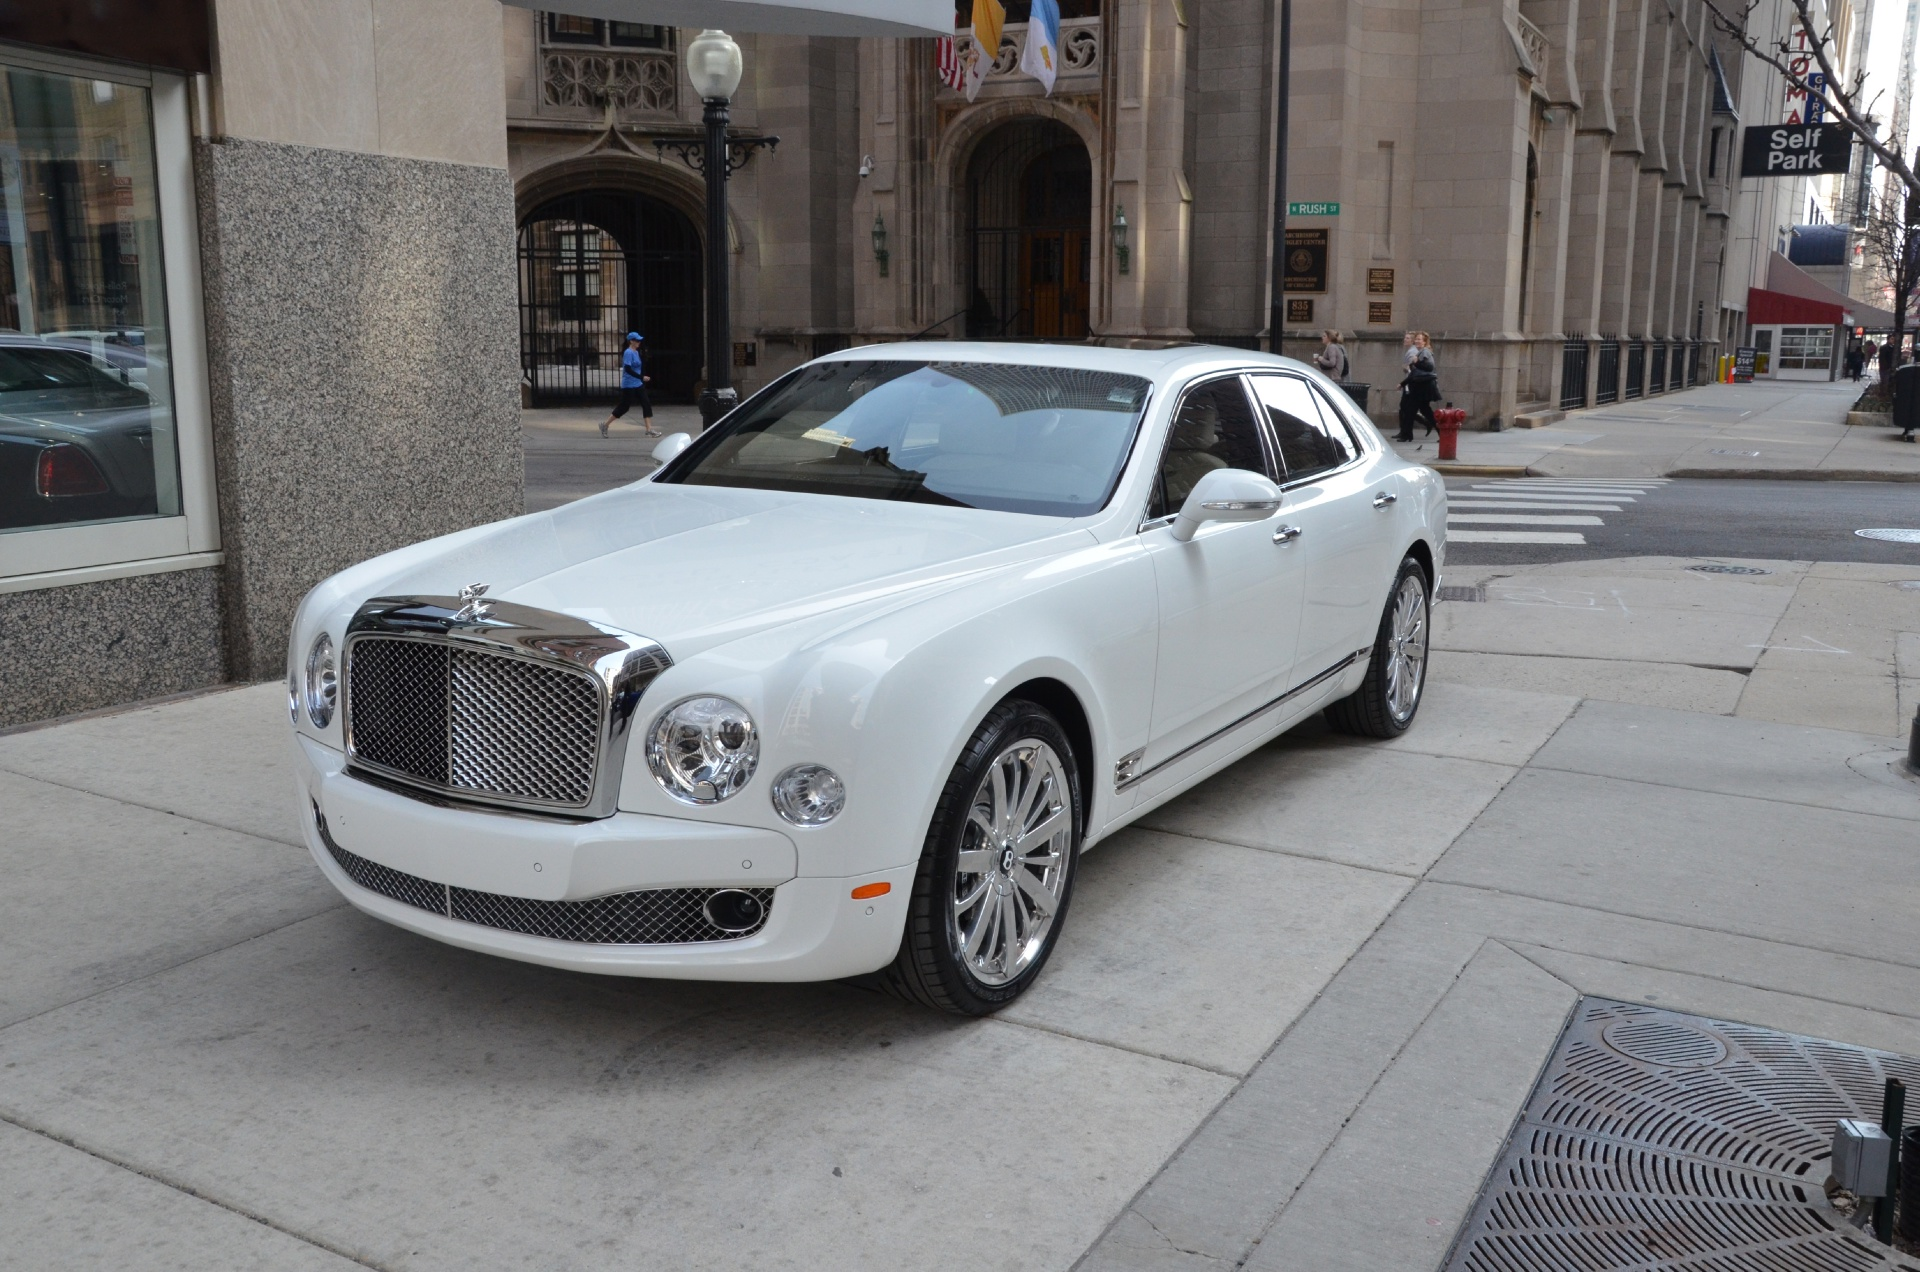 2013 bentley mulsanne white choice image hd cars wallpaper 2013 bentley mulsanne information and photos momentcar bentley mulsanne 2013 6 bentley mulsanne 2013 6 vanachro vanachro Images